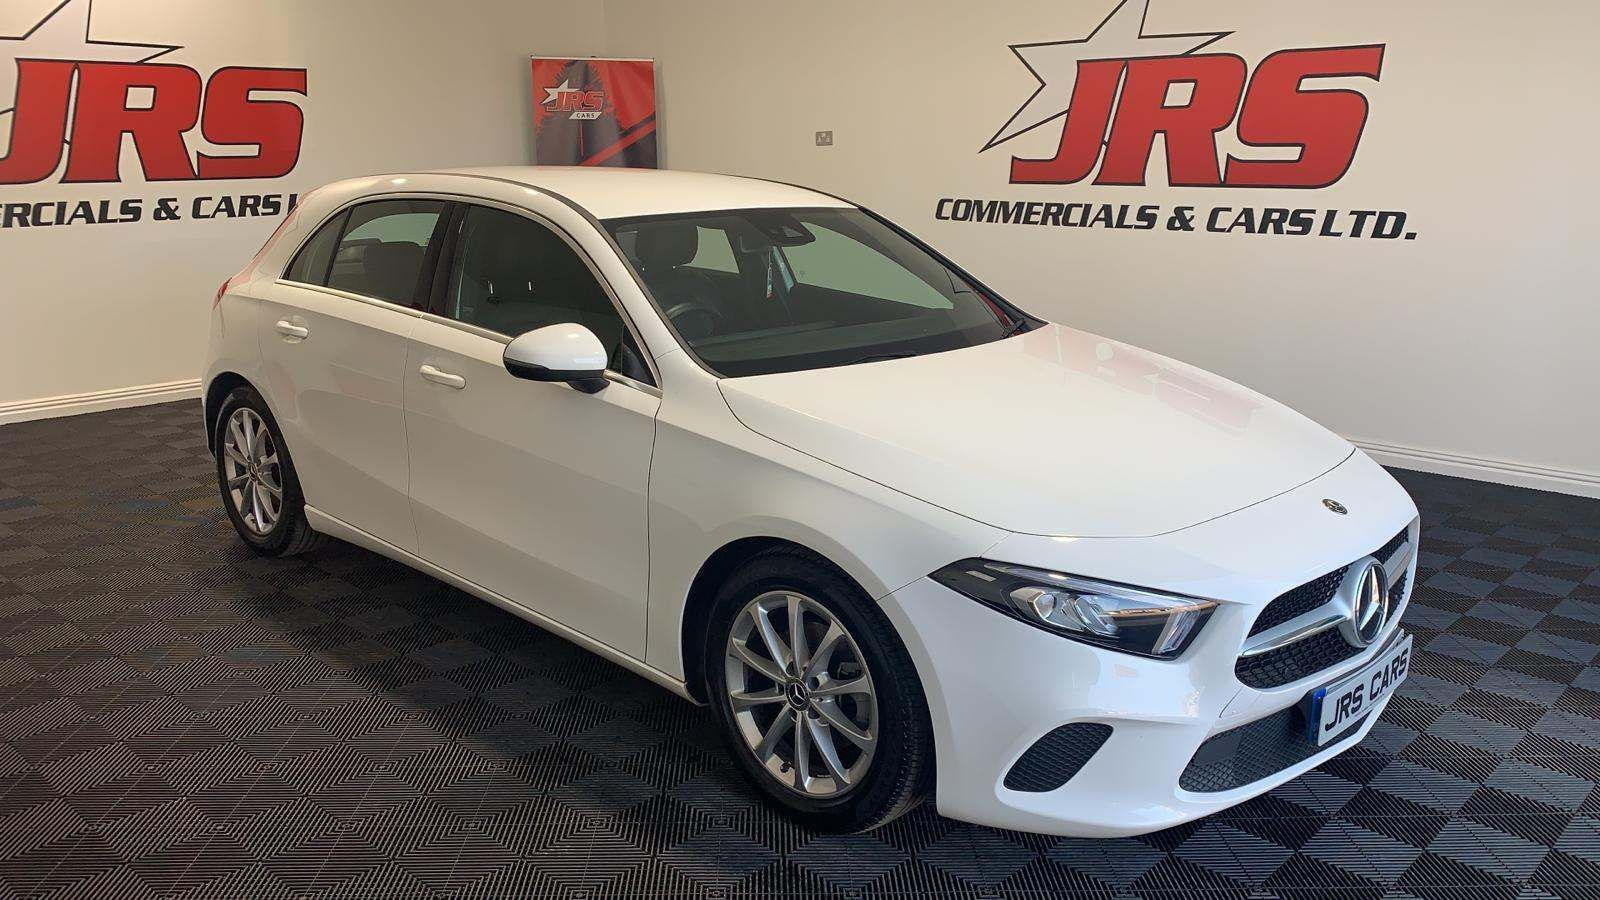 2018 MERCEDES BENZ A Class 1.5 A180d Sport 7G-DCT (s/s) Diesel Automatic *Reversing Camera* – J R S Commercials And Cars Dungannon full